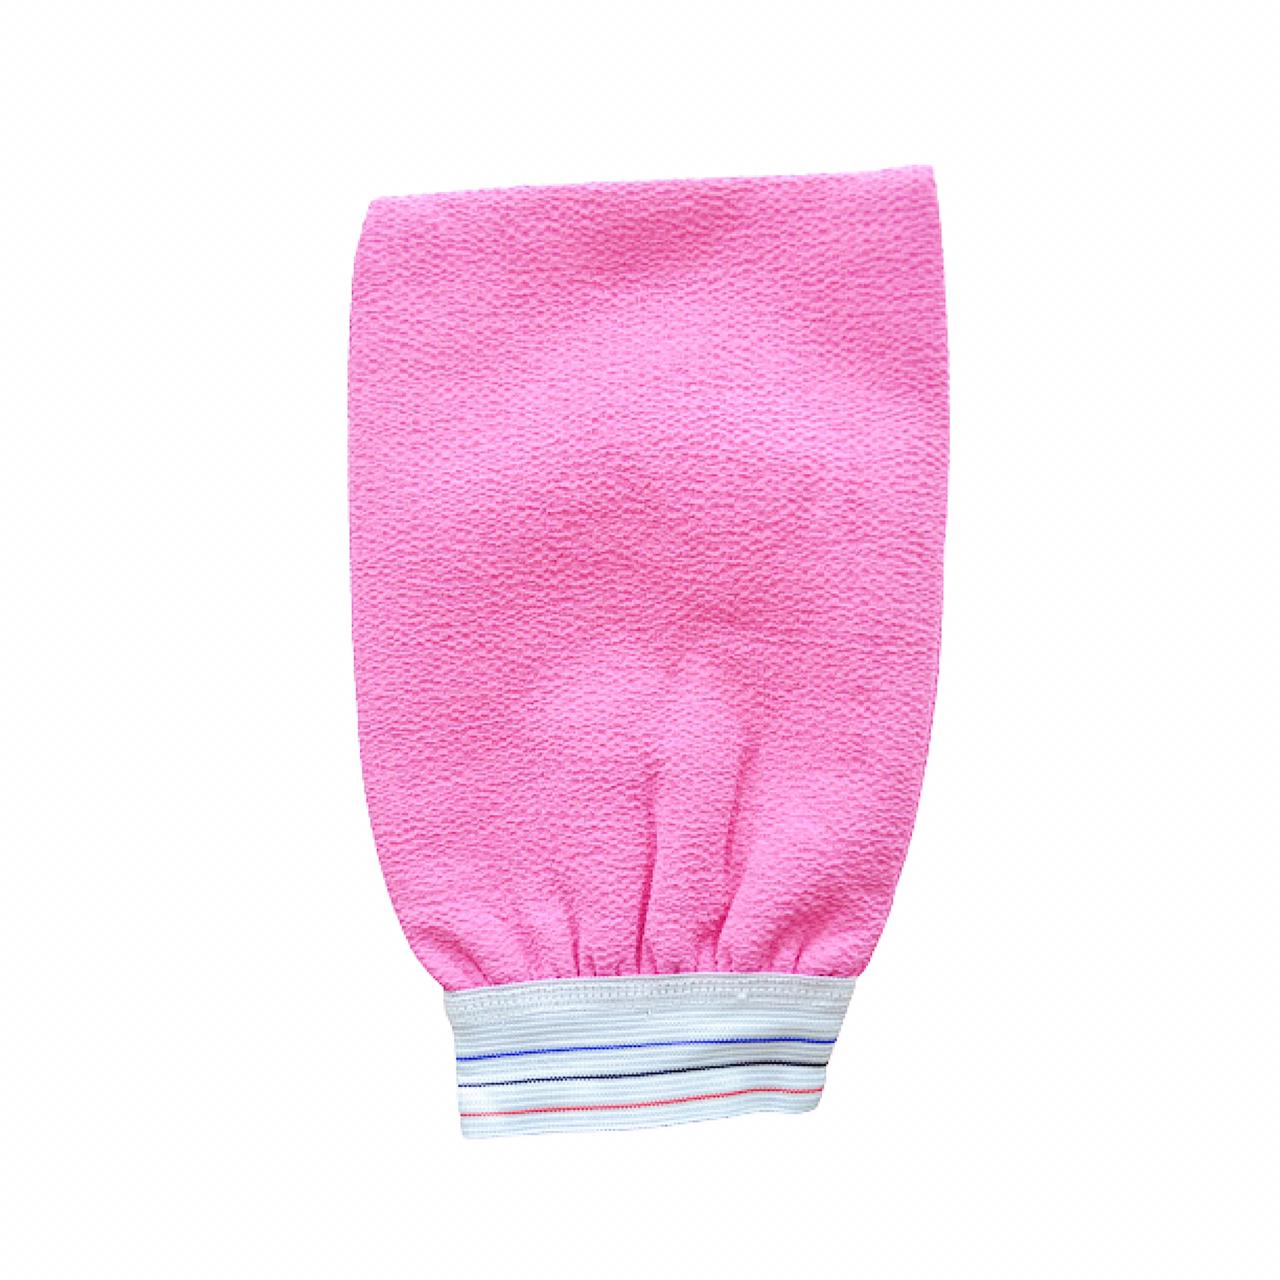 Beautystar Double Layer Moroccan Bath Mitt Assorted Color